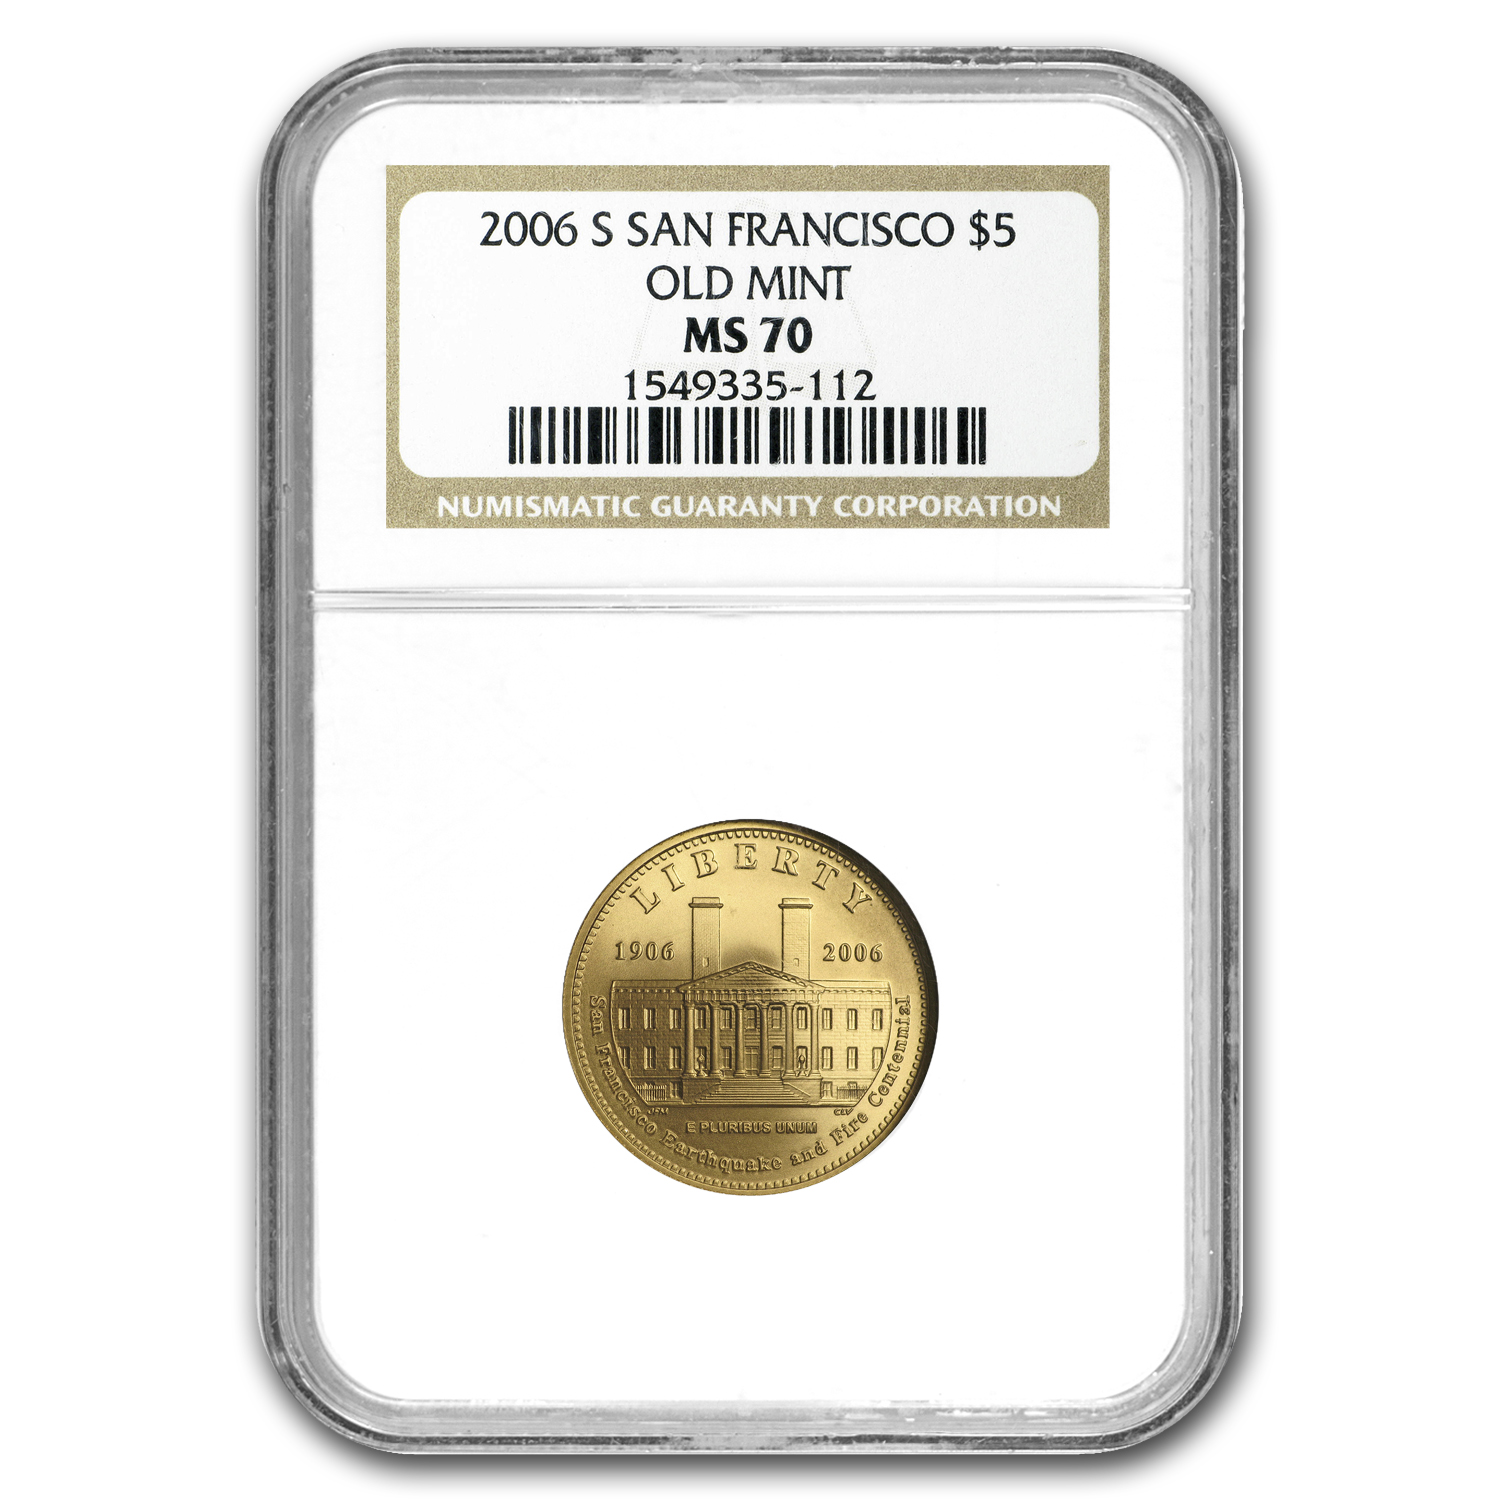 2006-S Gold $5 Commem San Francisco Old Mint MS-70 NGC